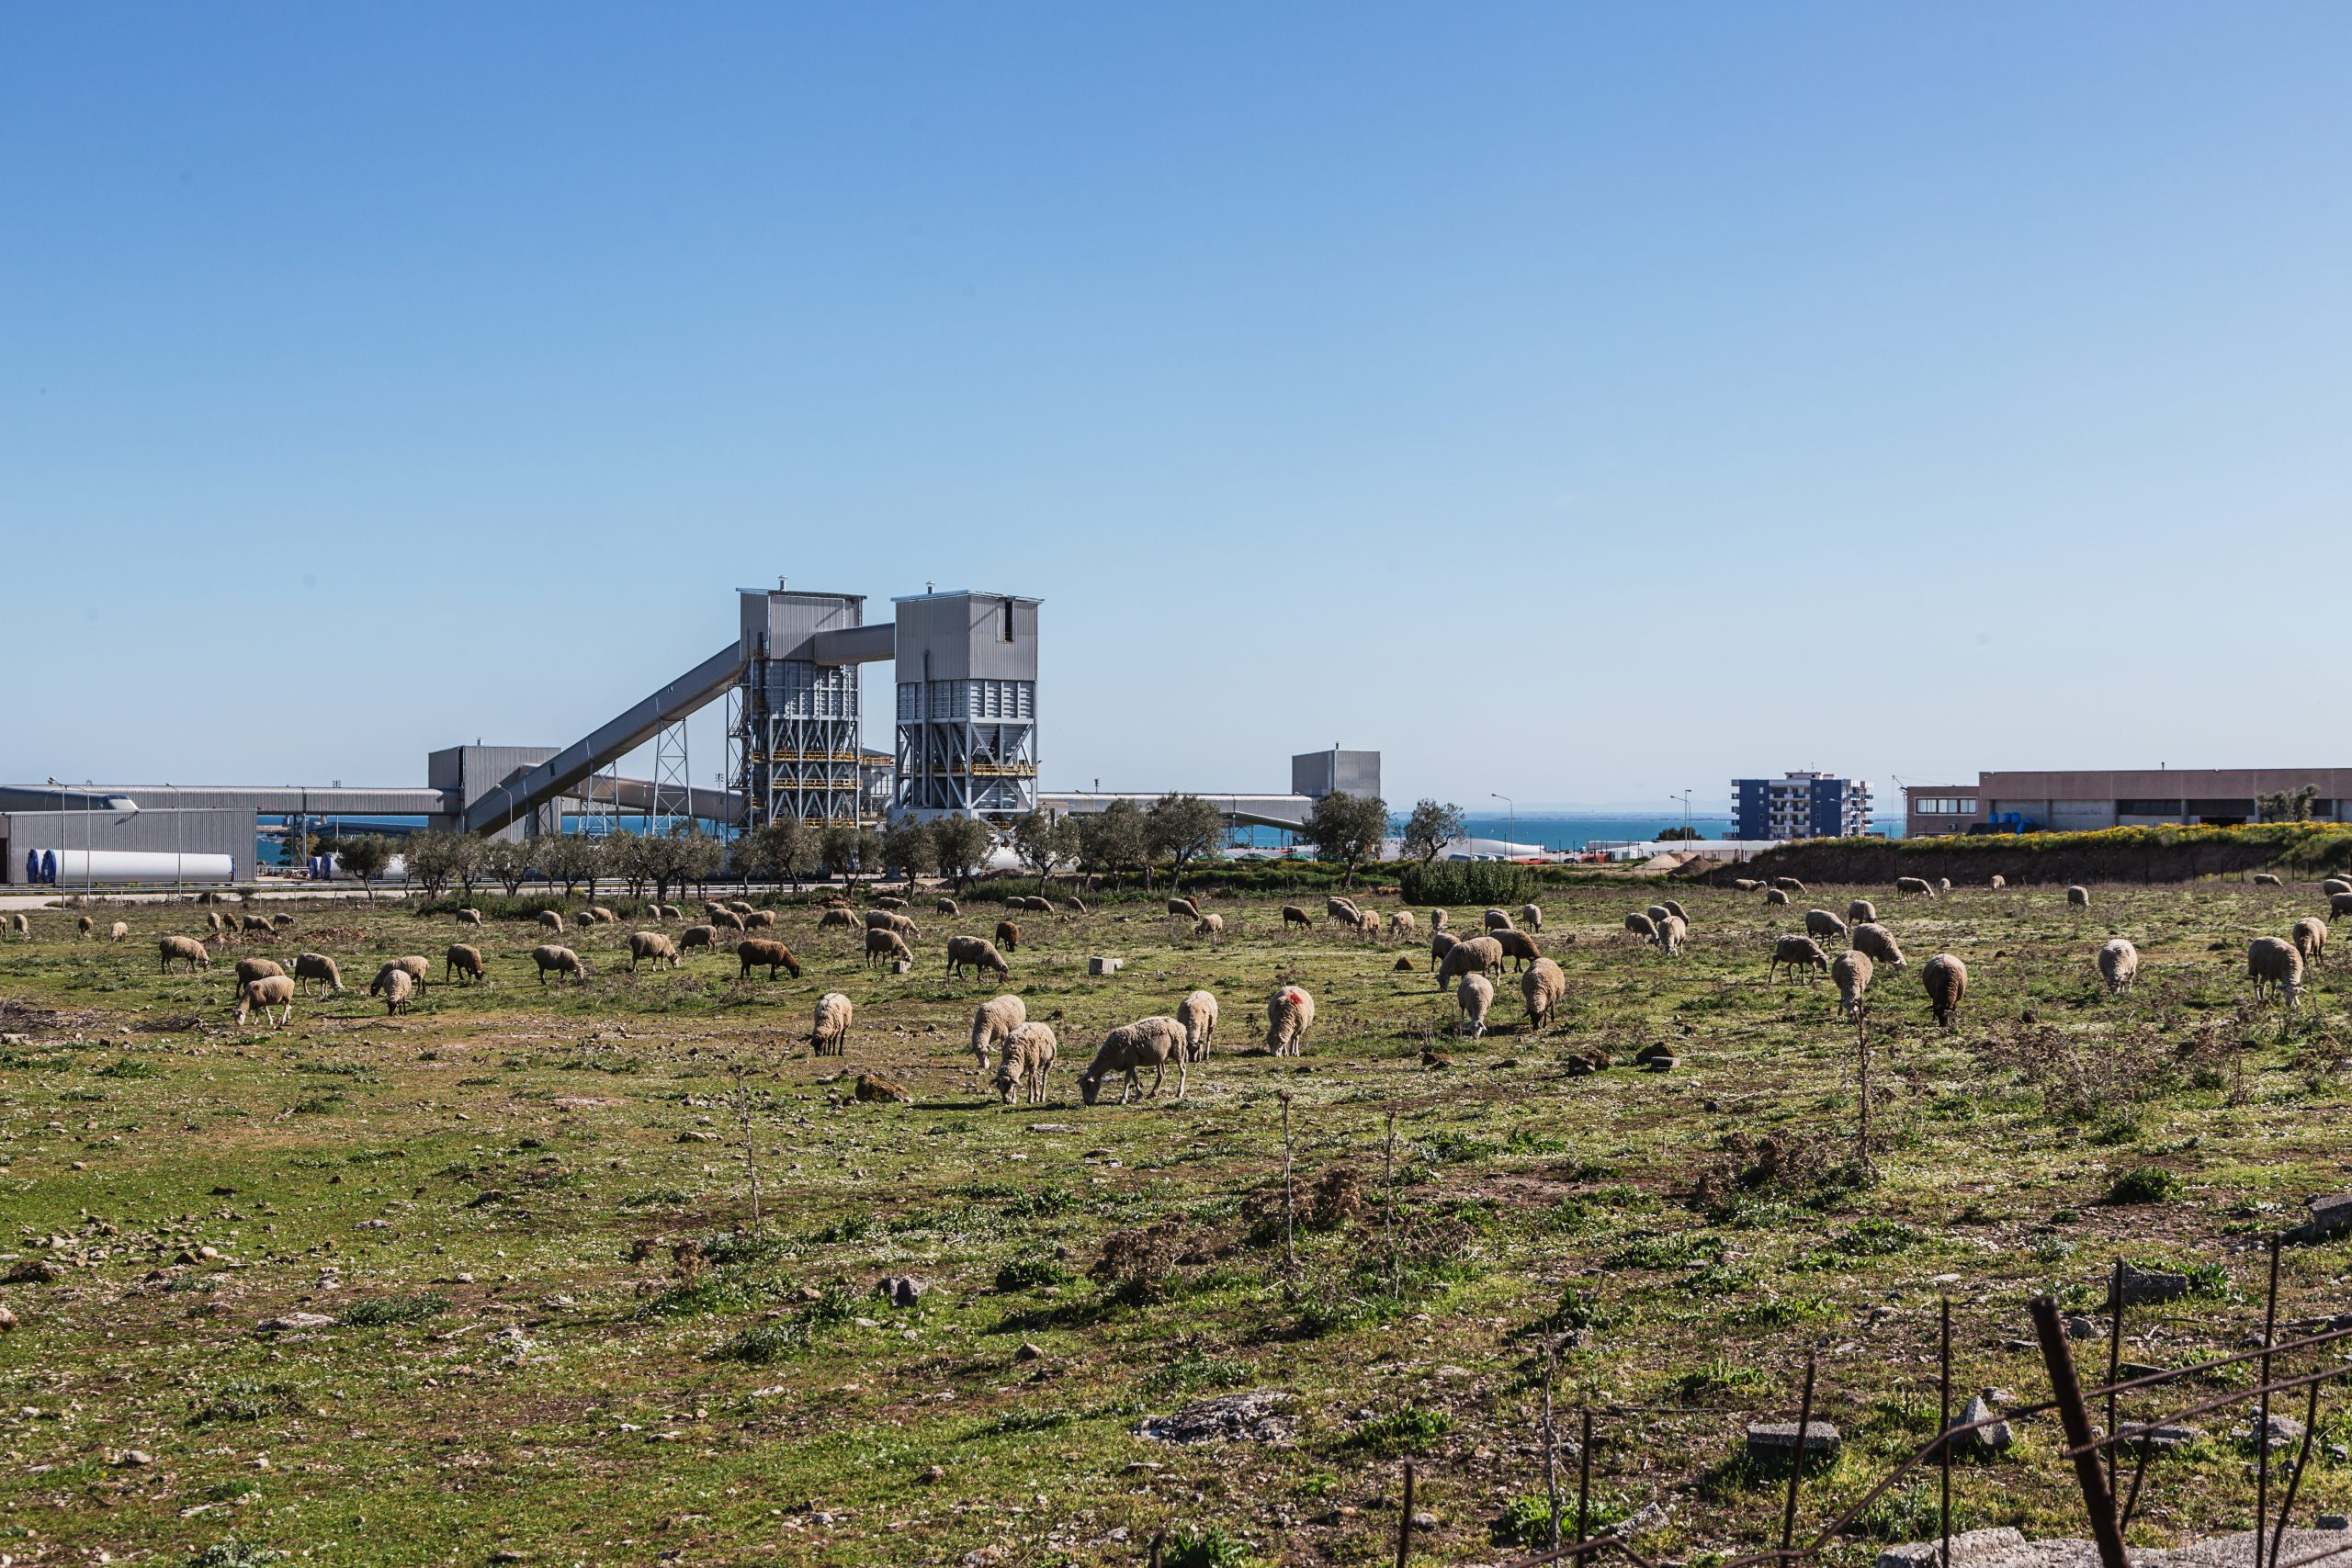 Contrada Pace - Sheep grazing next to the industrial area.